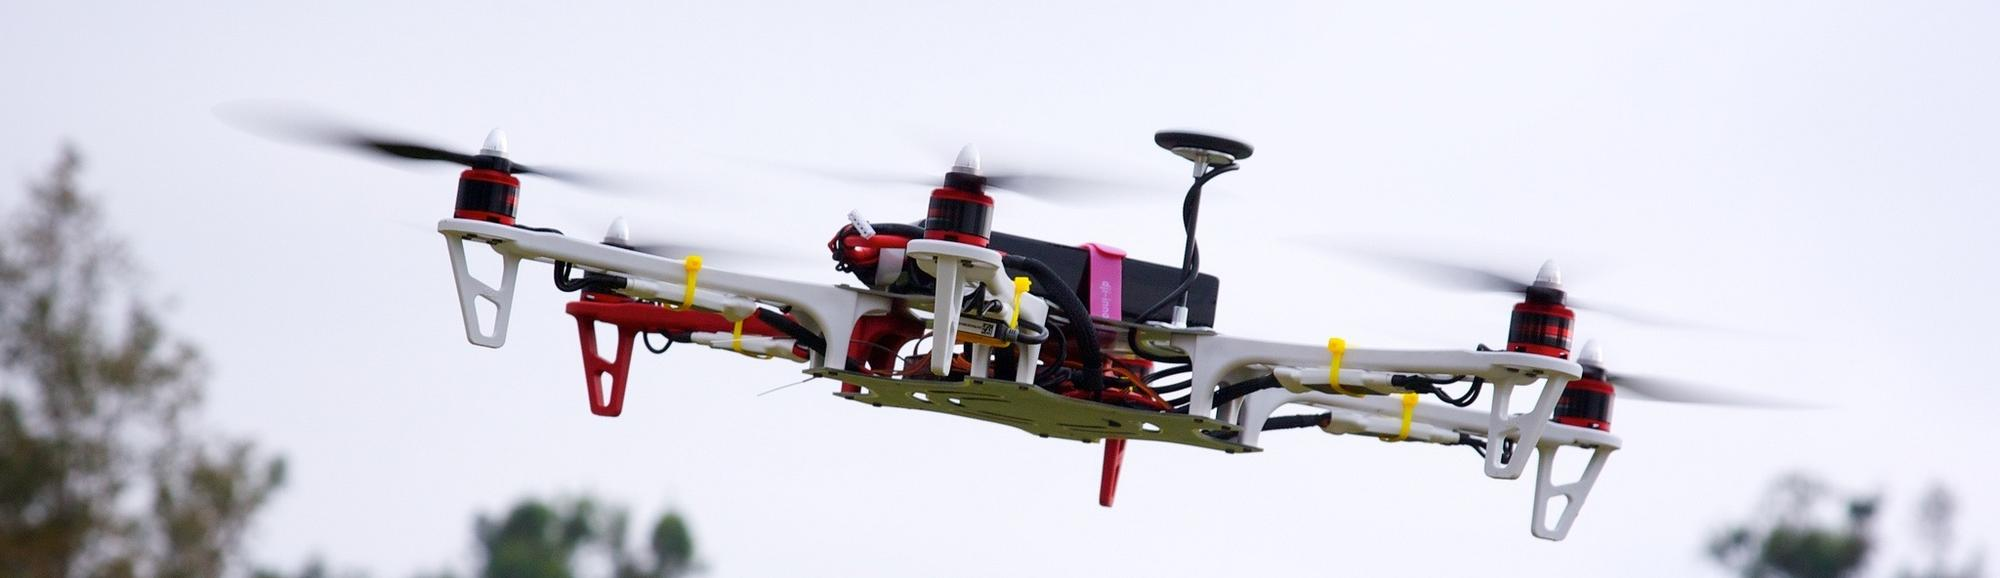 another drone was used to smuggle contraband into a prison